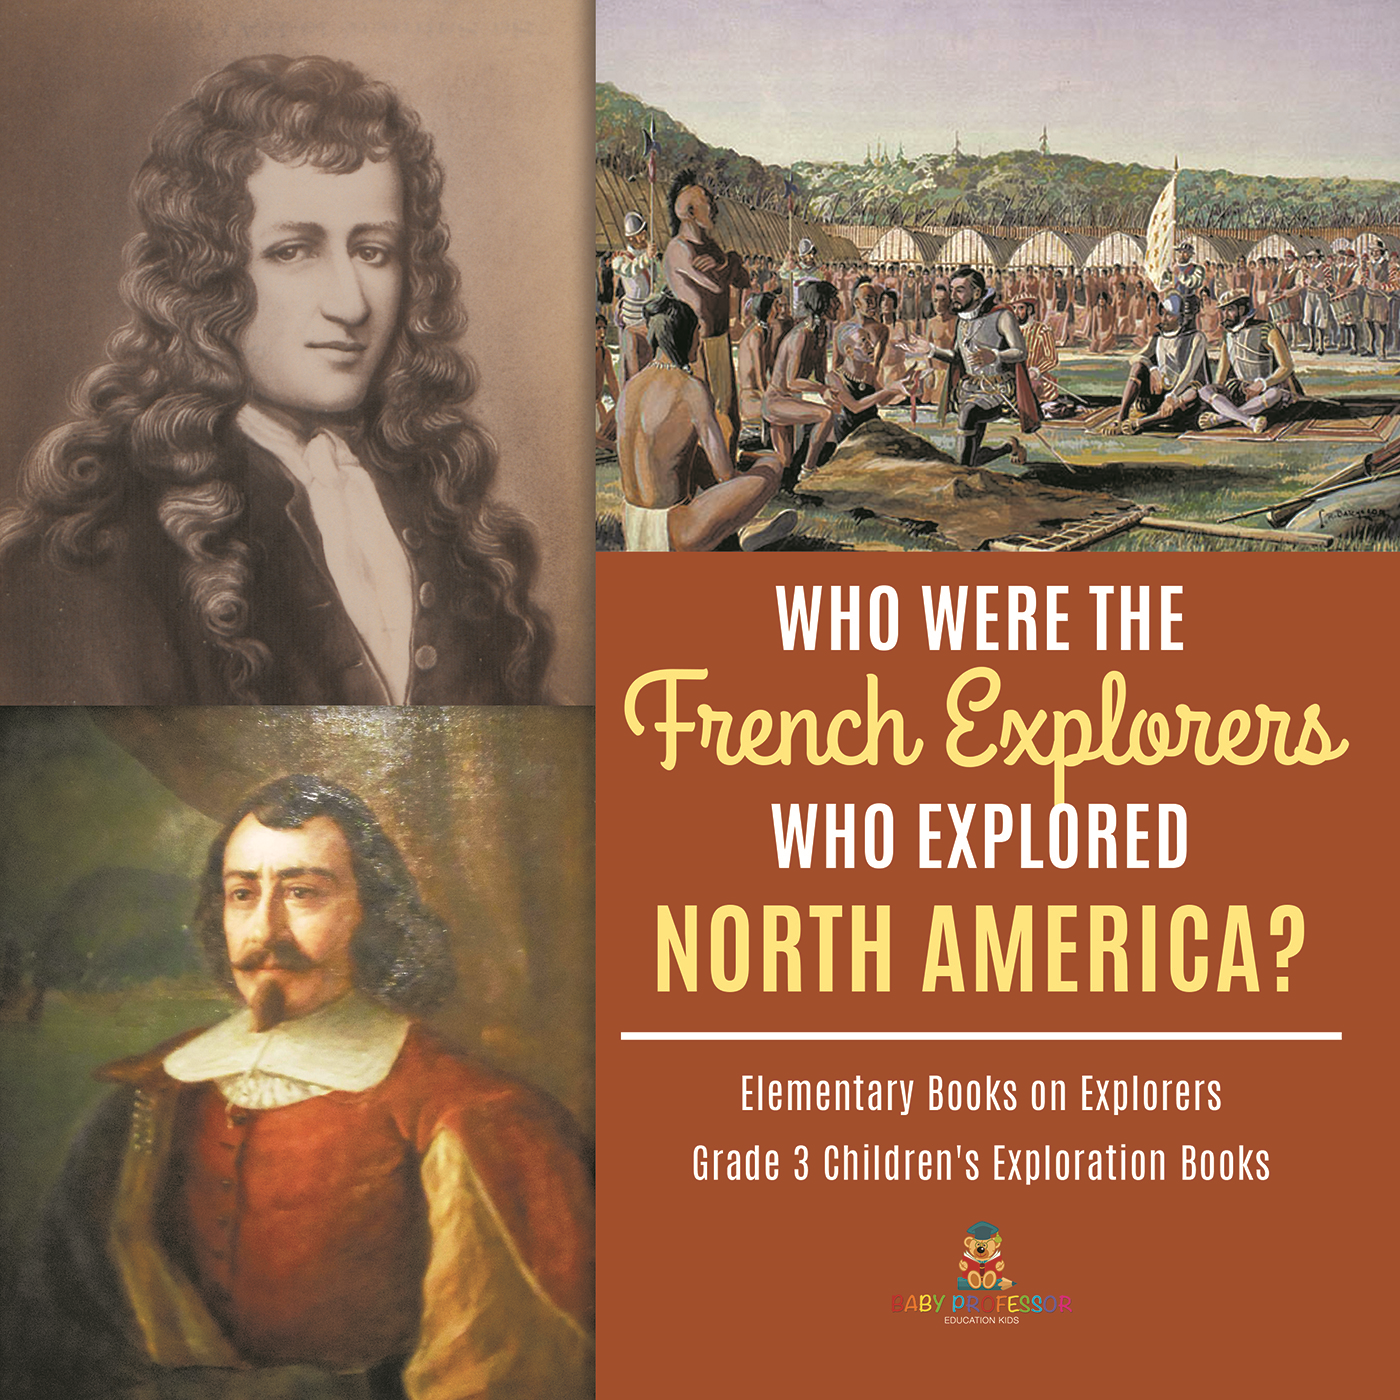 Who Were the French Explorers Who Explored North America? | Elementary Books on Explorers | Grade 3 Children's Exploration Books